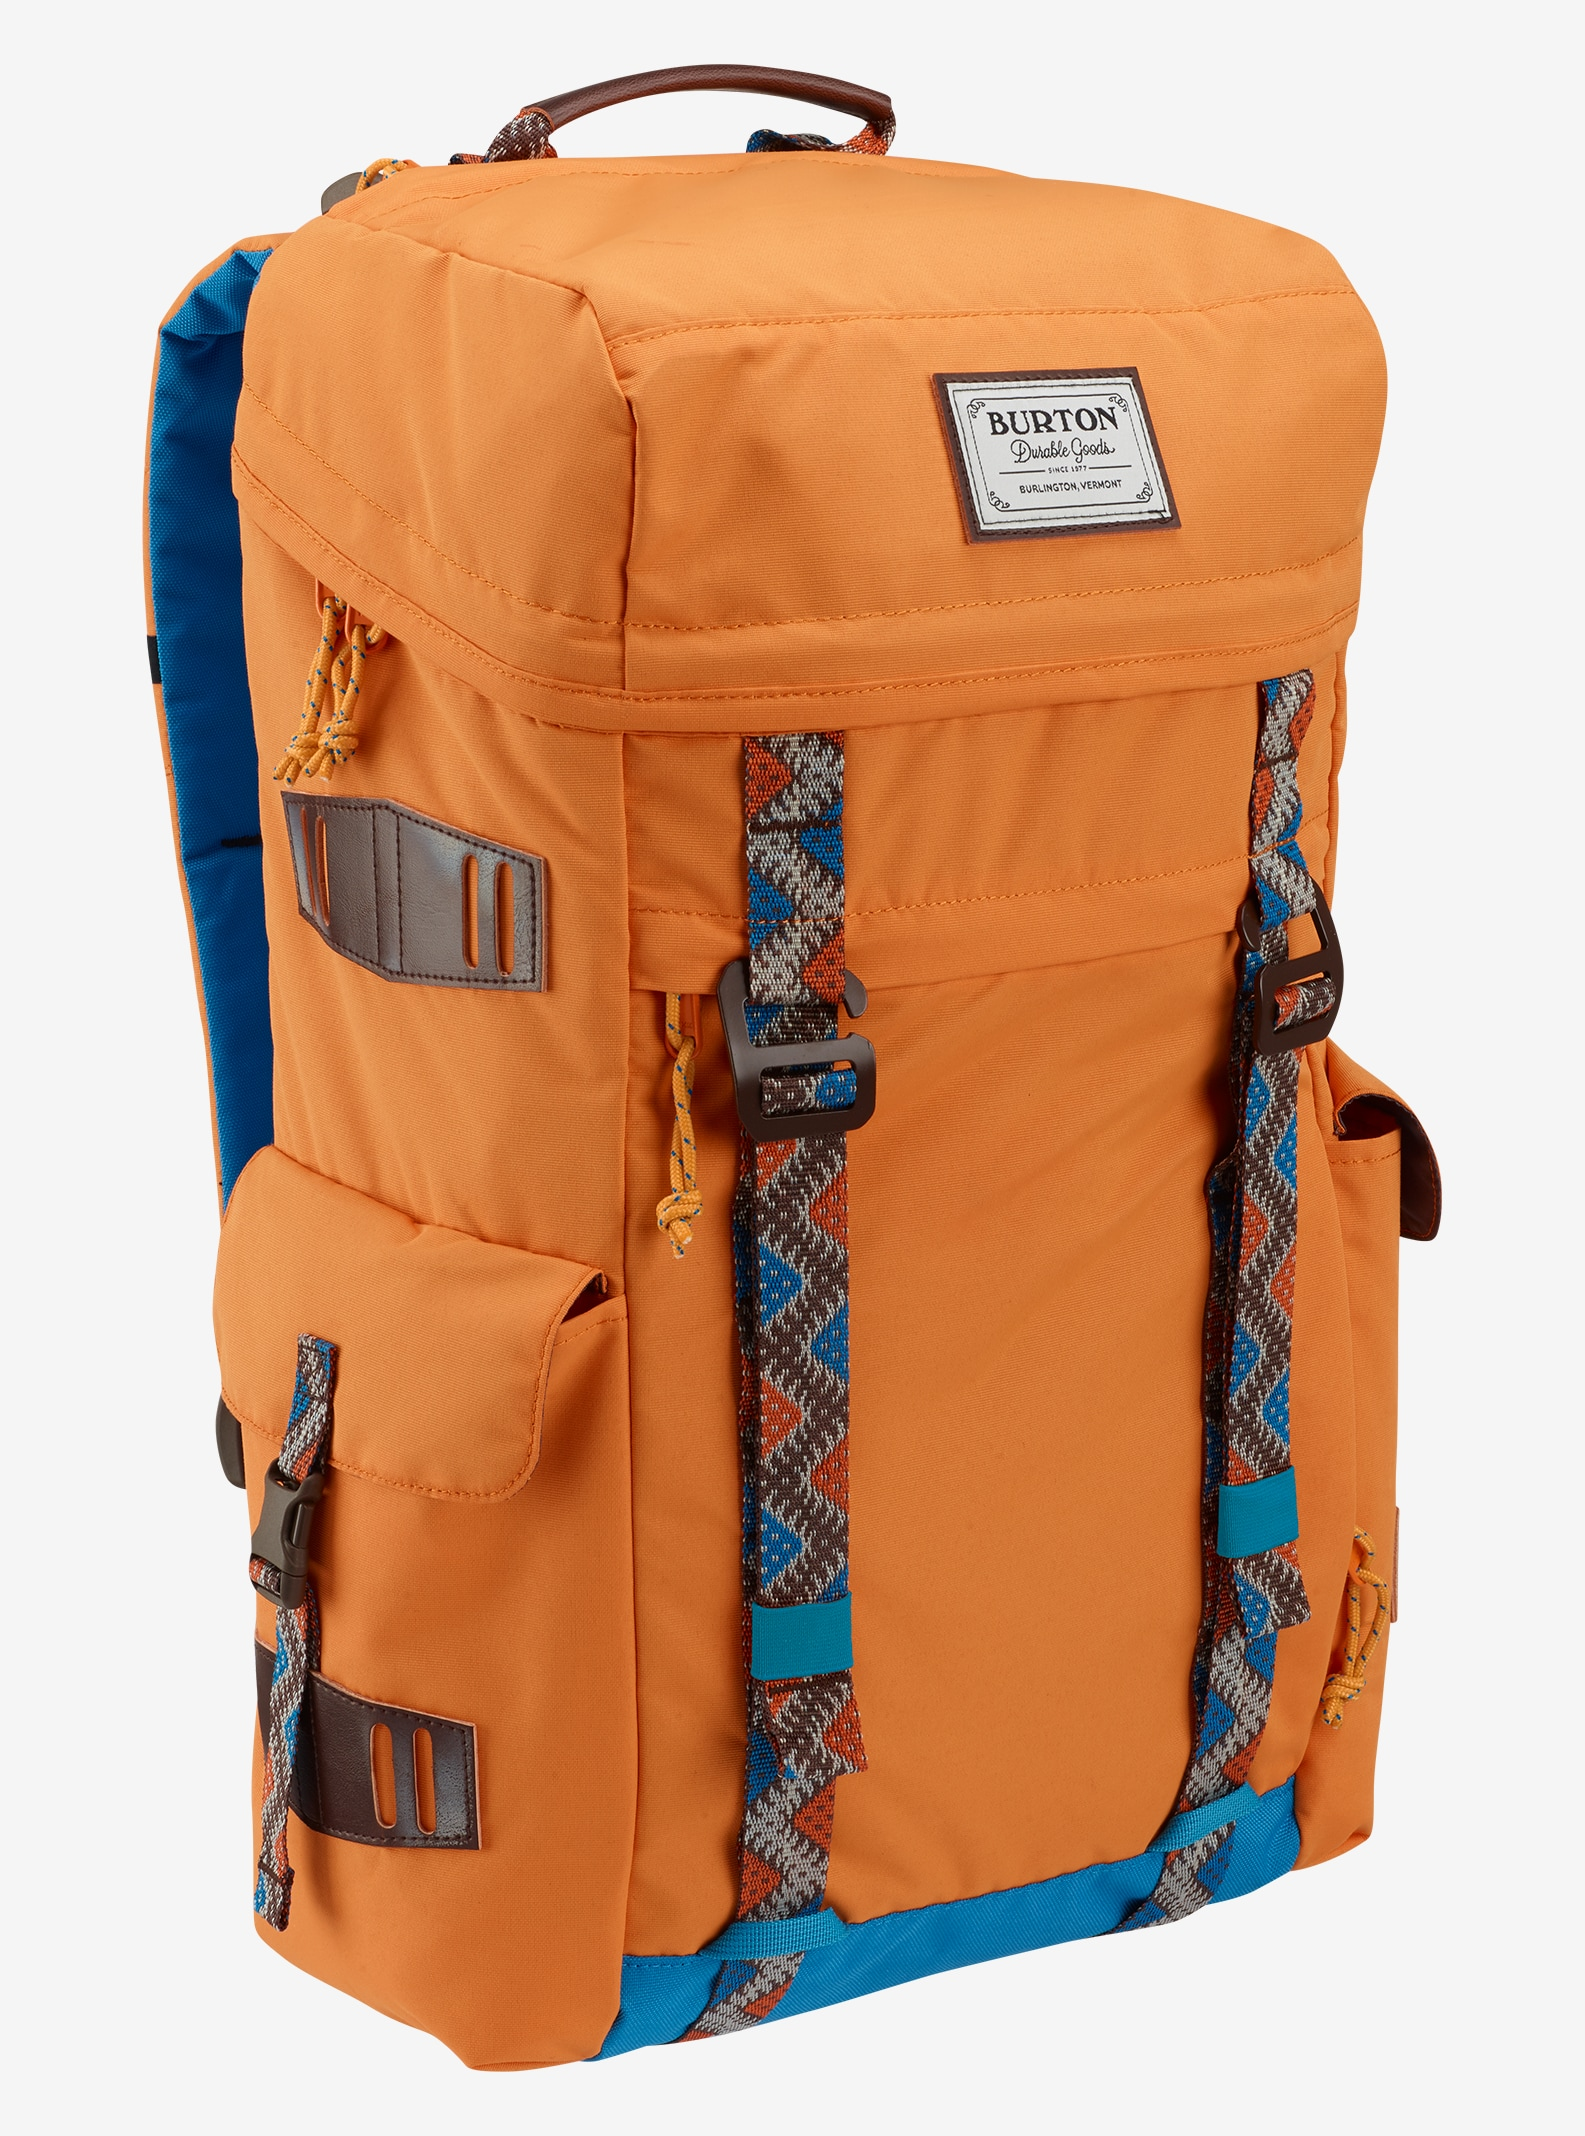 Burton Annex Backpack shown in Ascent Orange